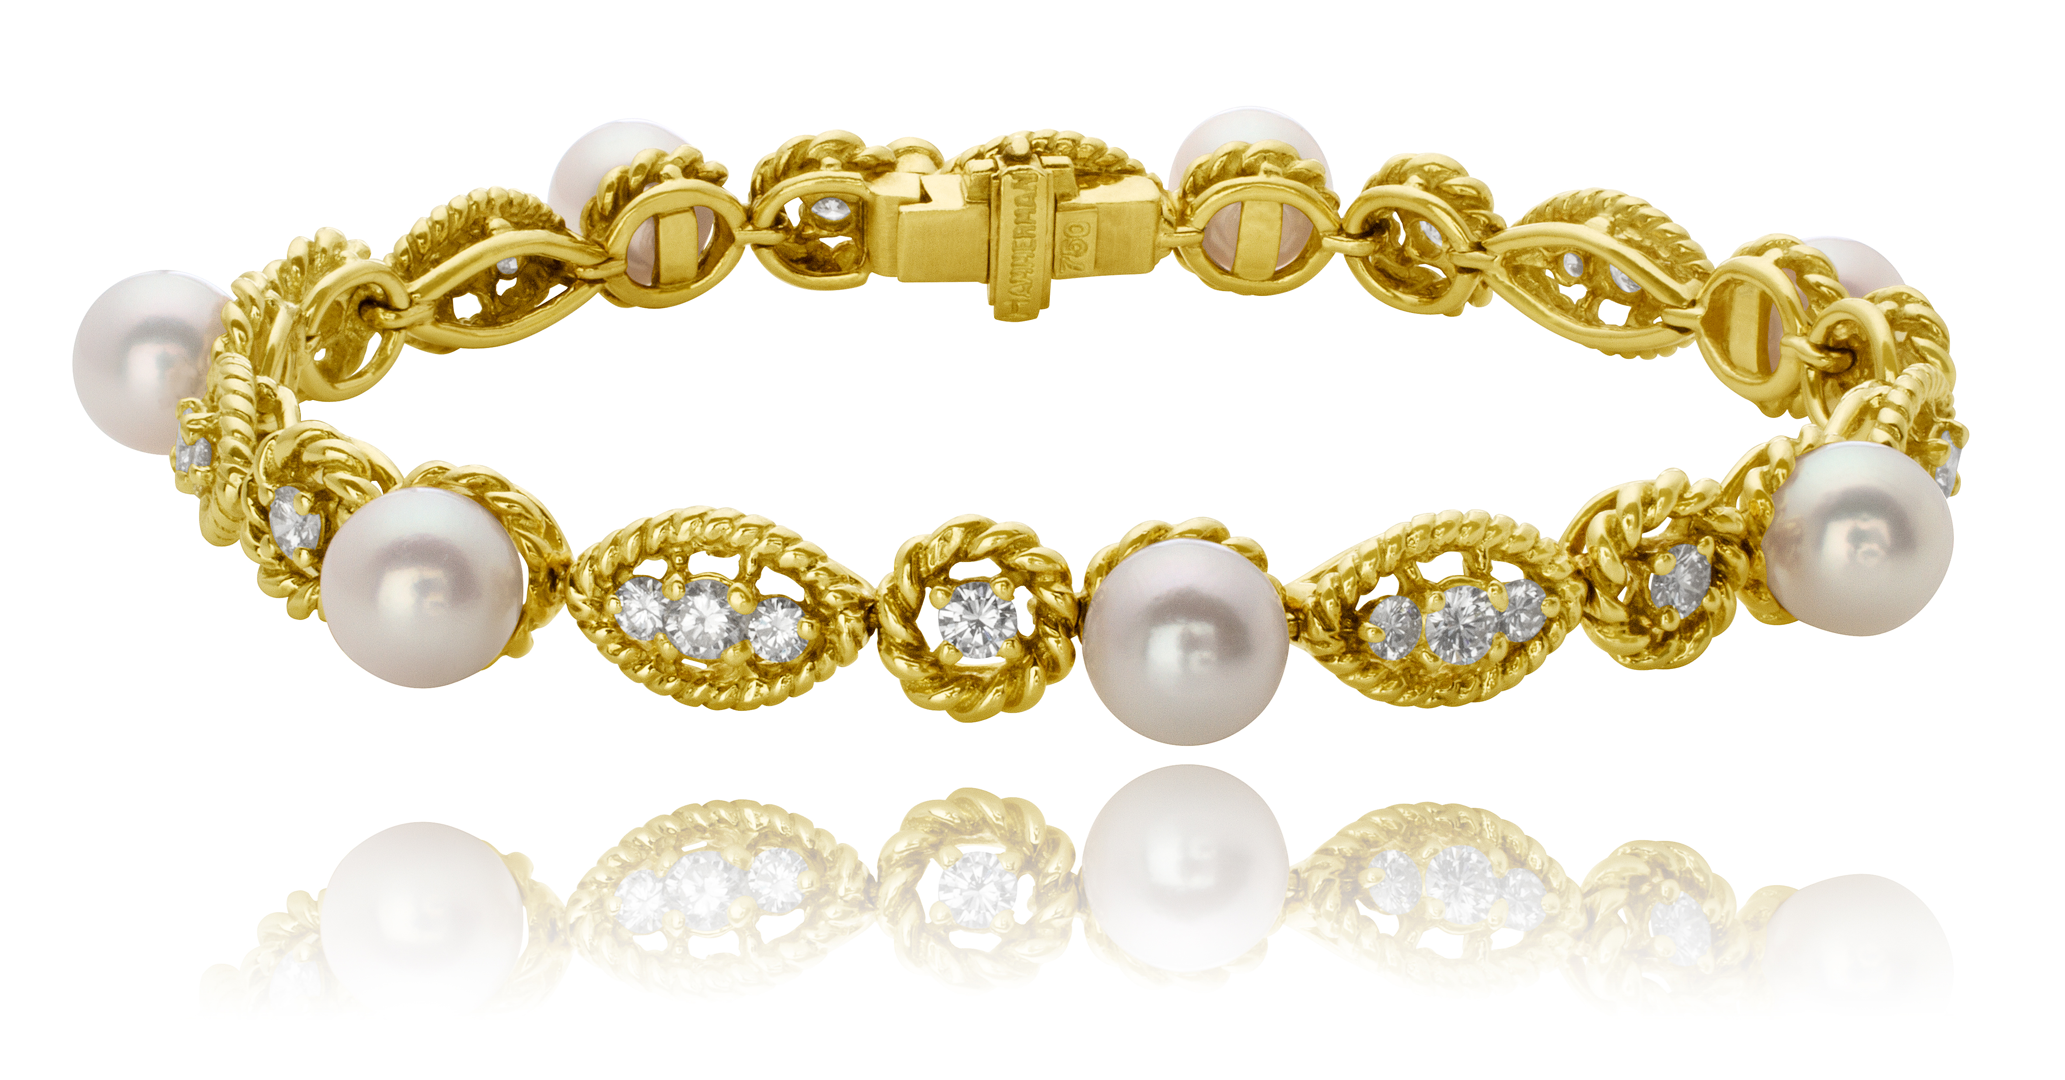 jewels christies nyr s diamond christie online pearl cultured bracelet mikimoto and